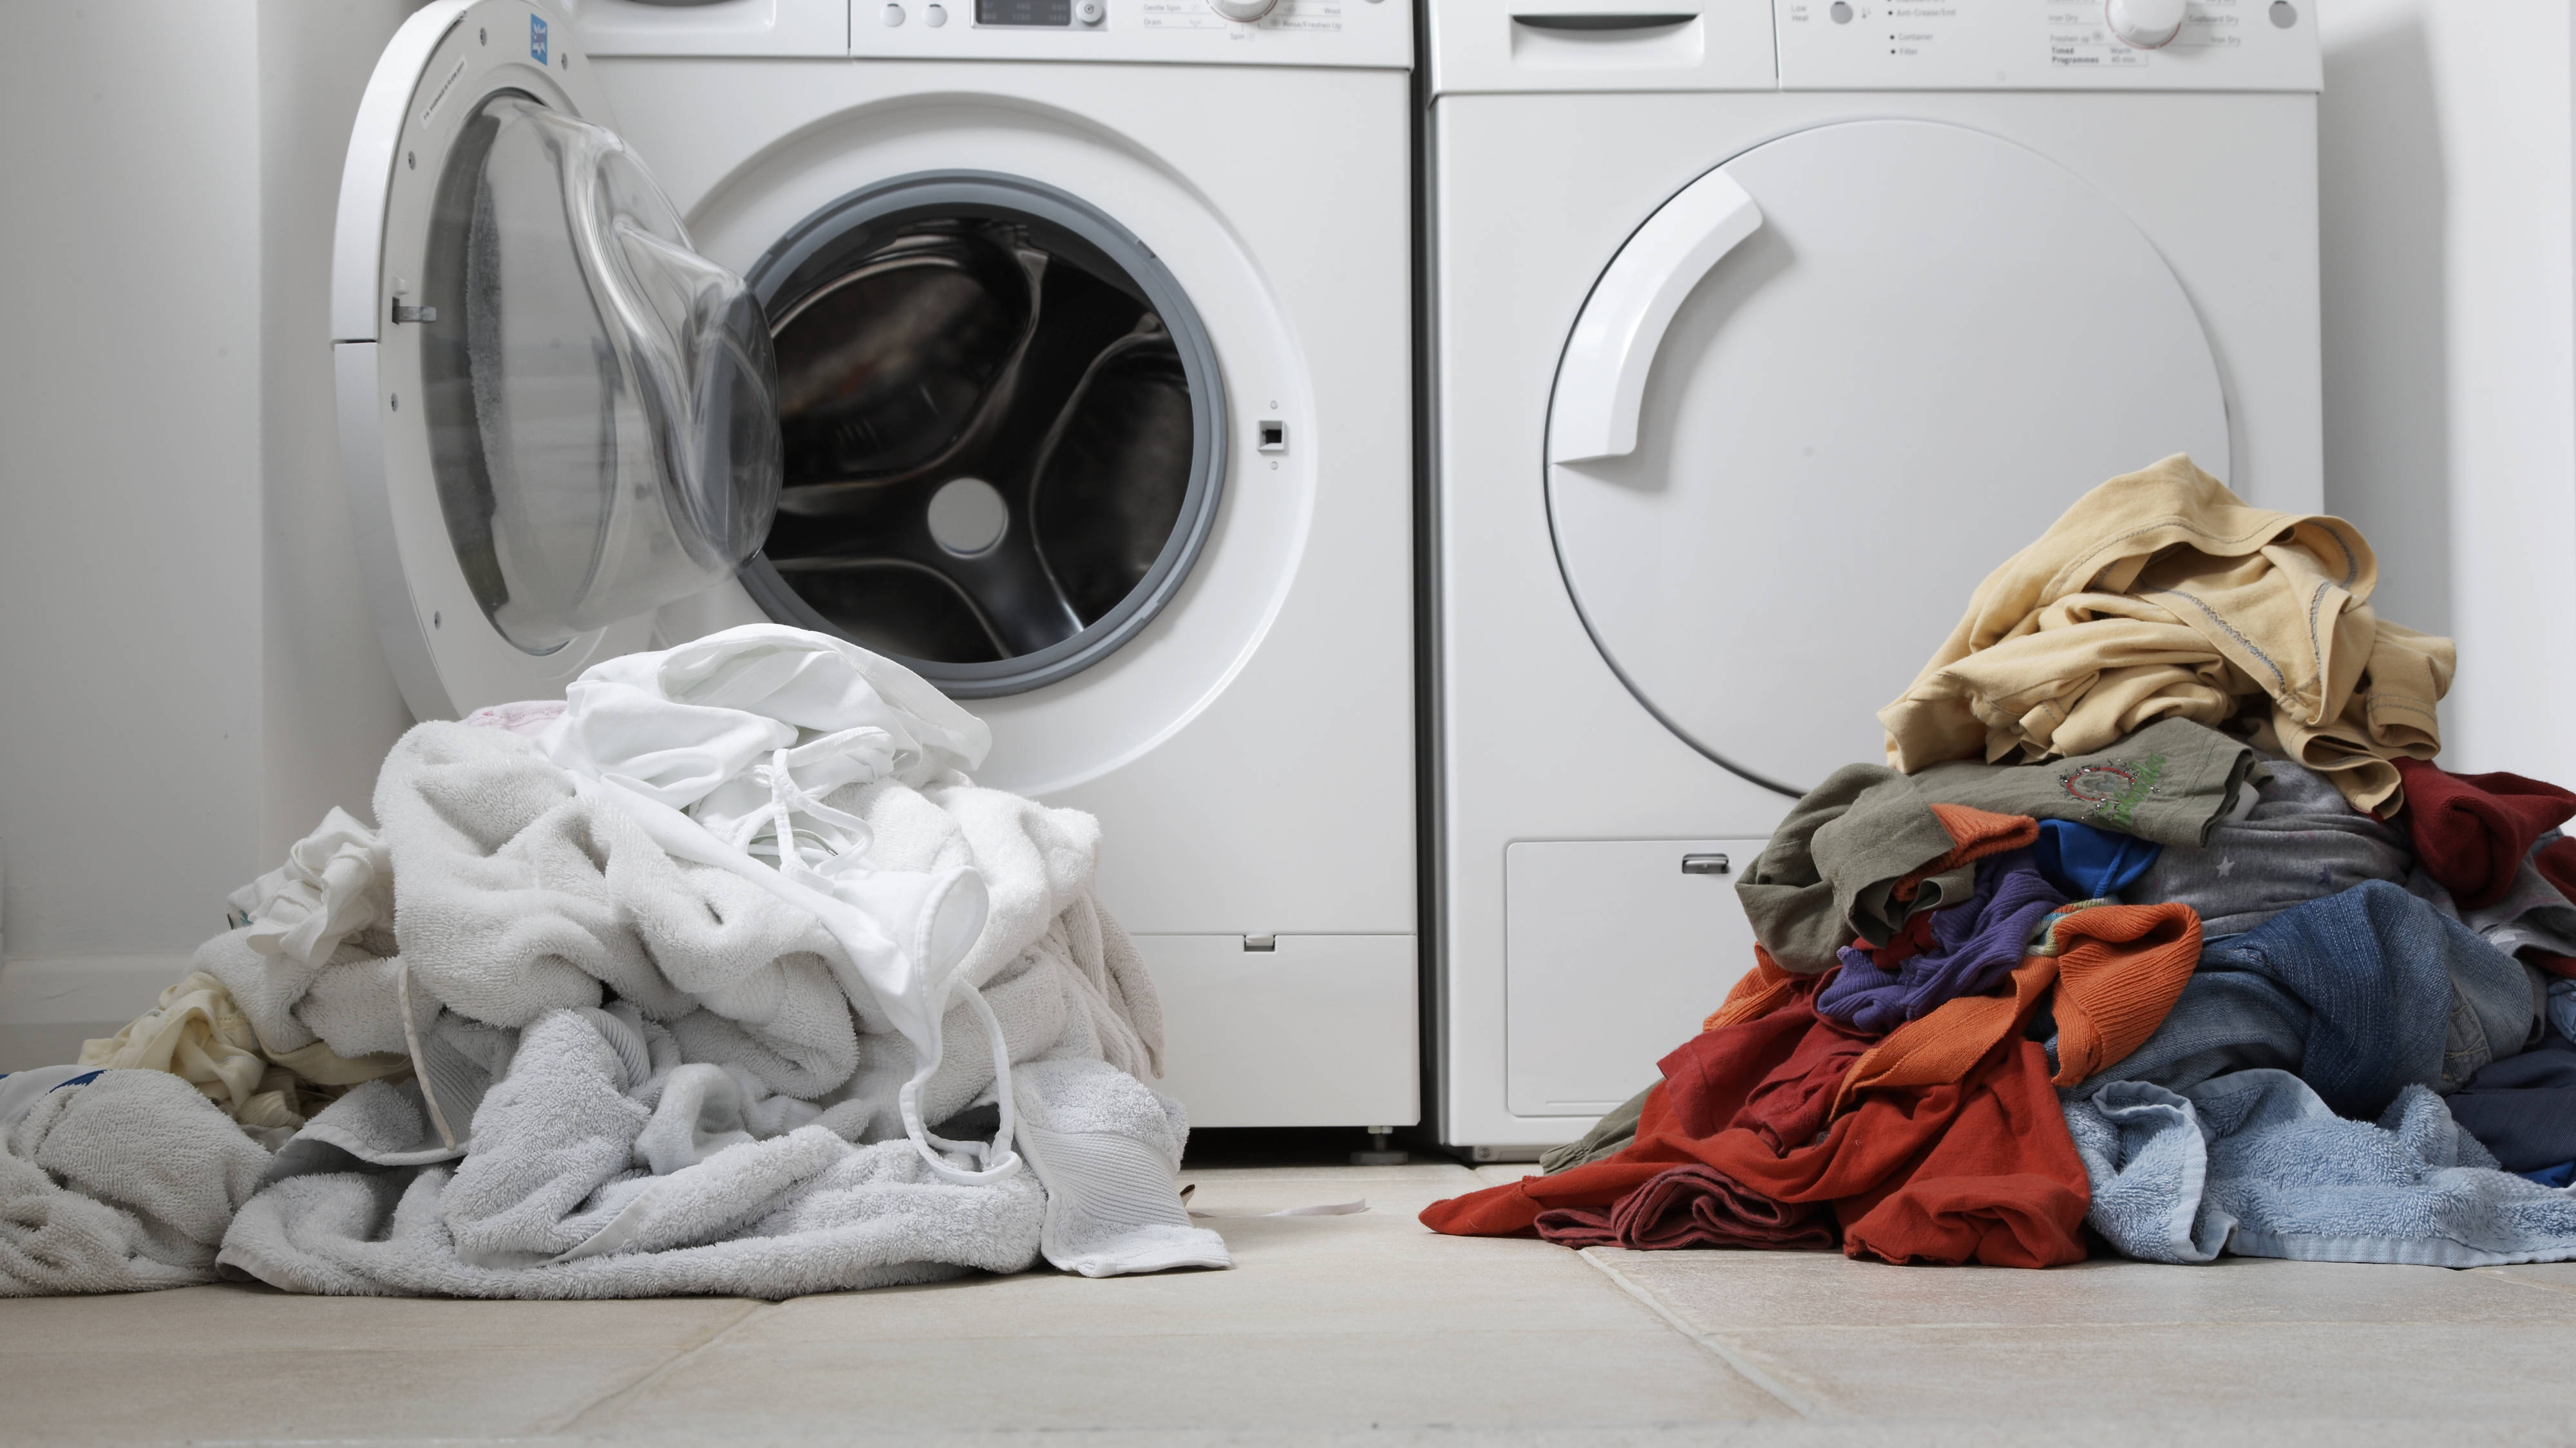 How To Make Your Clothes Smell Good In The Dryer mum reveals genius two-minute hack that stops laundry